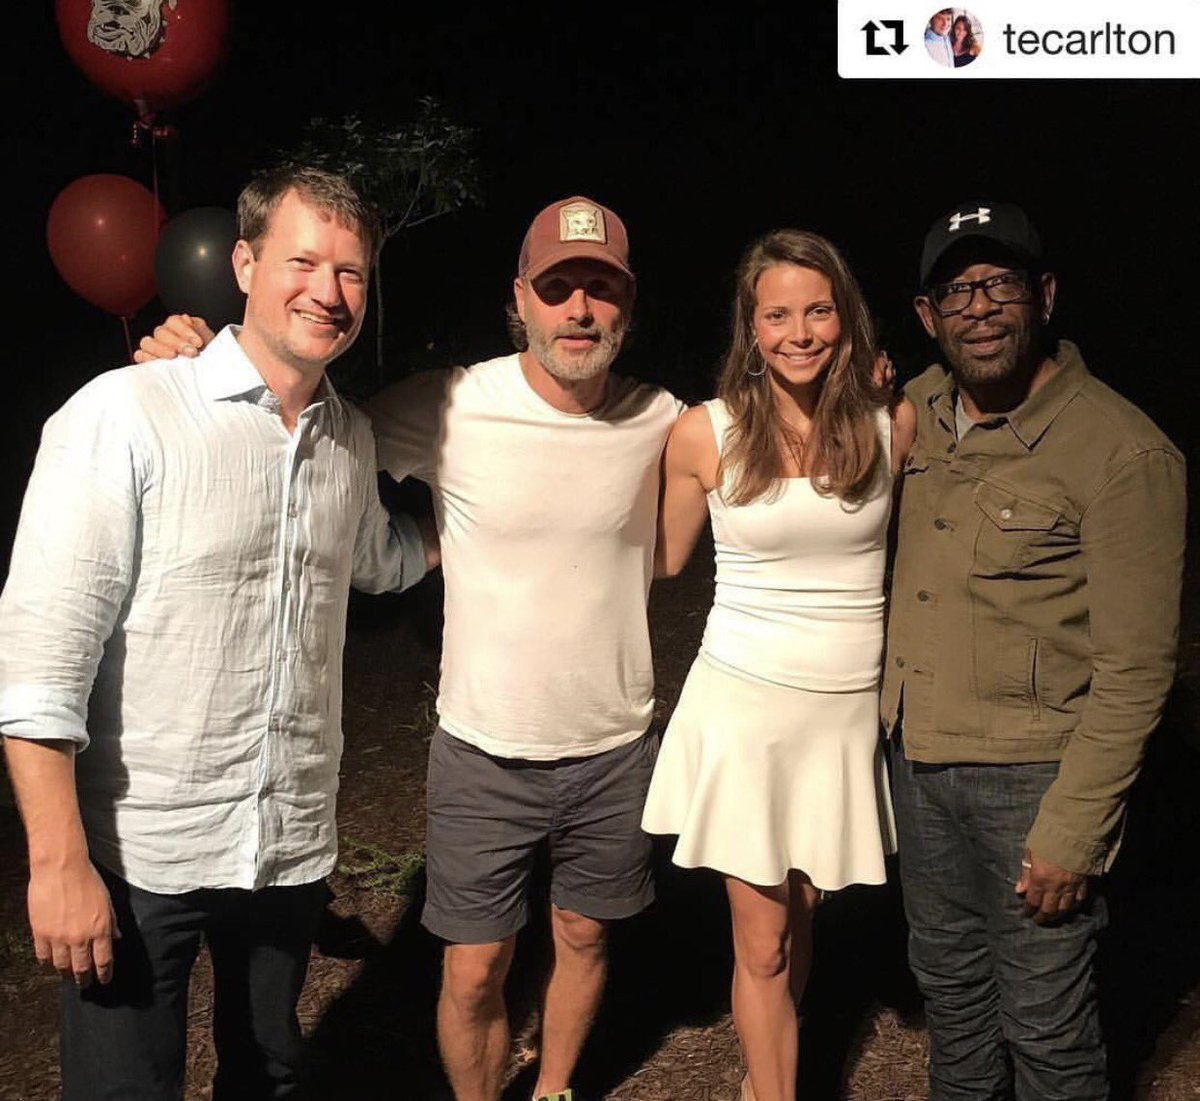 Evening  Andy and Lennie celebrate Chandler&#39;s High School graduation! #TWDFamily   IG: tecarlton  #AndrewLincoln #LennieJames #TWD #mcm<br>http://pic.twitter.com/sN79CO5ZZG